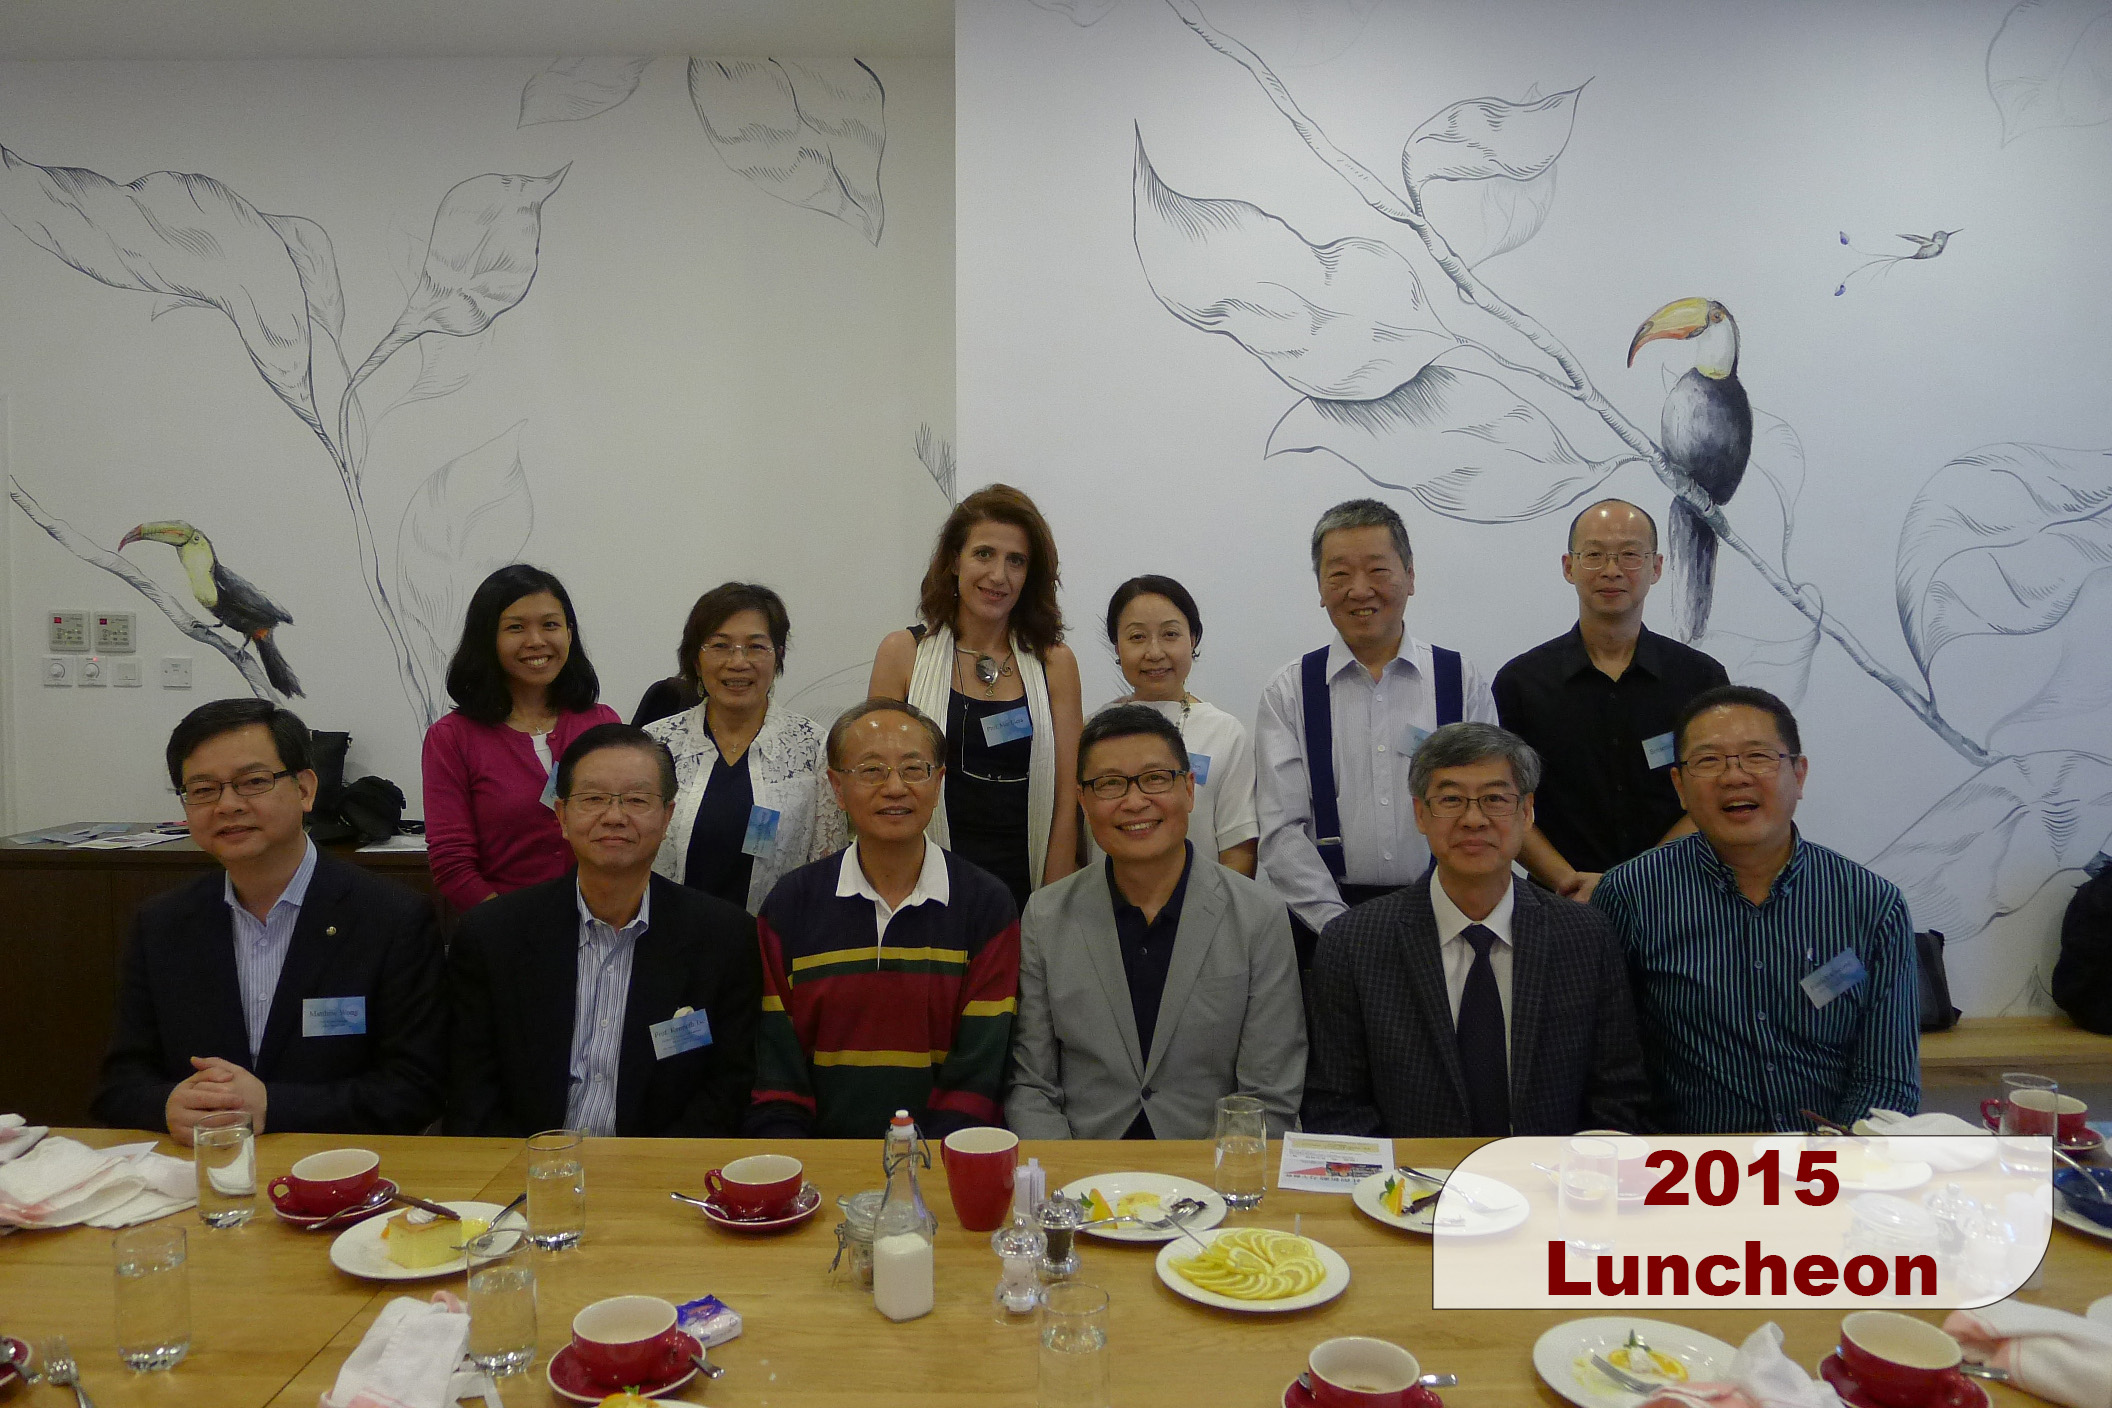 (2016 Luncheon)P1090380edited